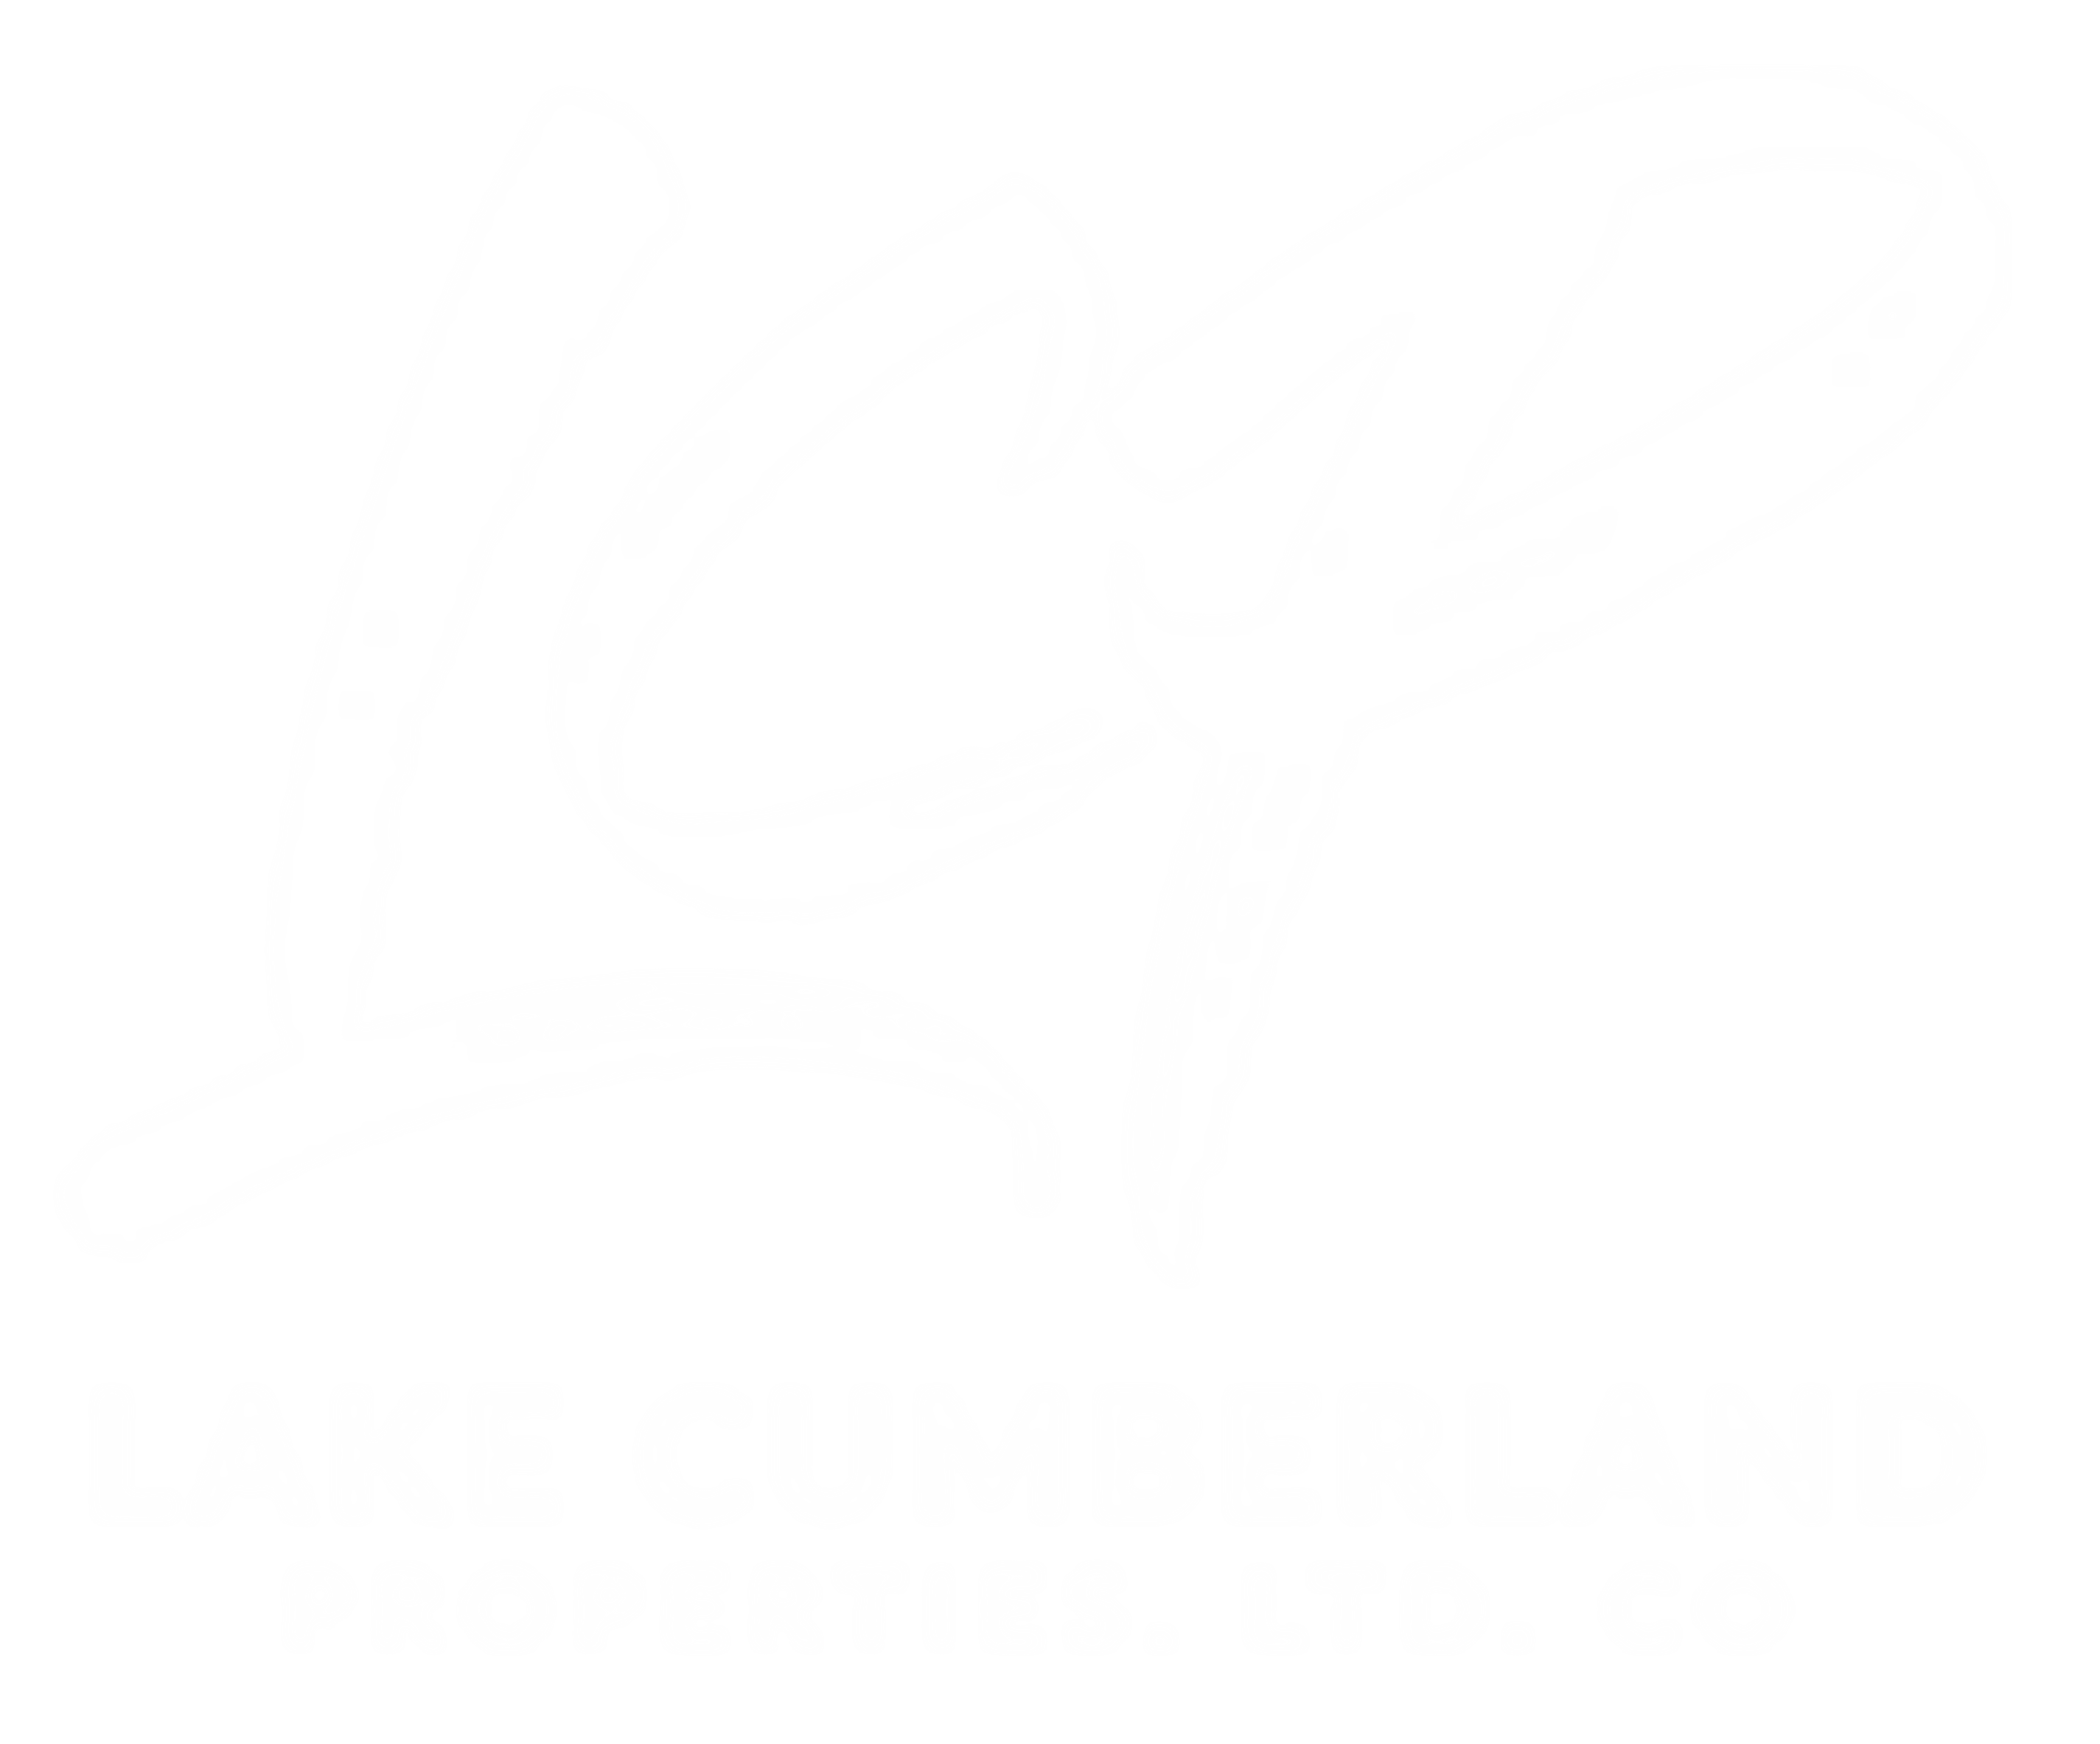 Lake Cumberland Properties, Ltd. Co. logo